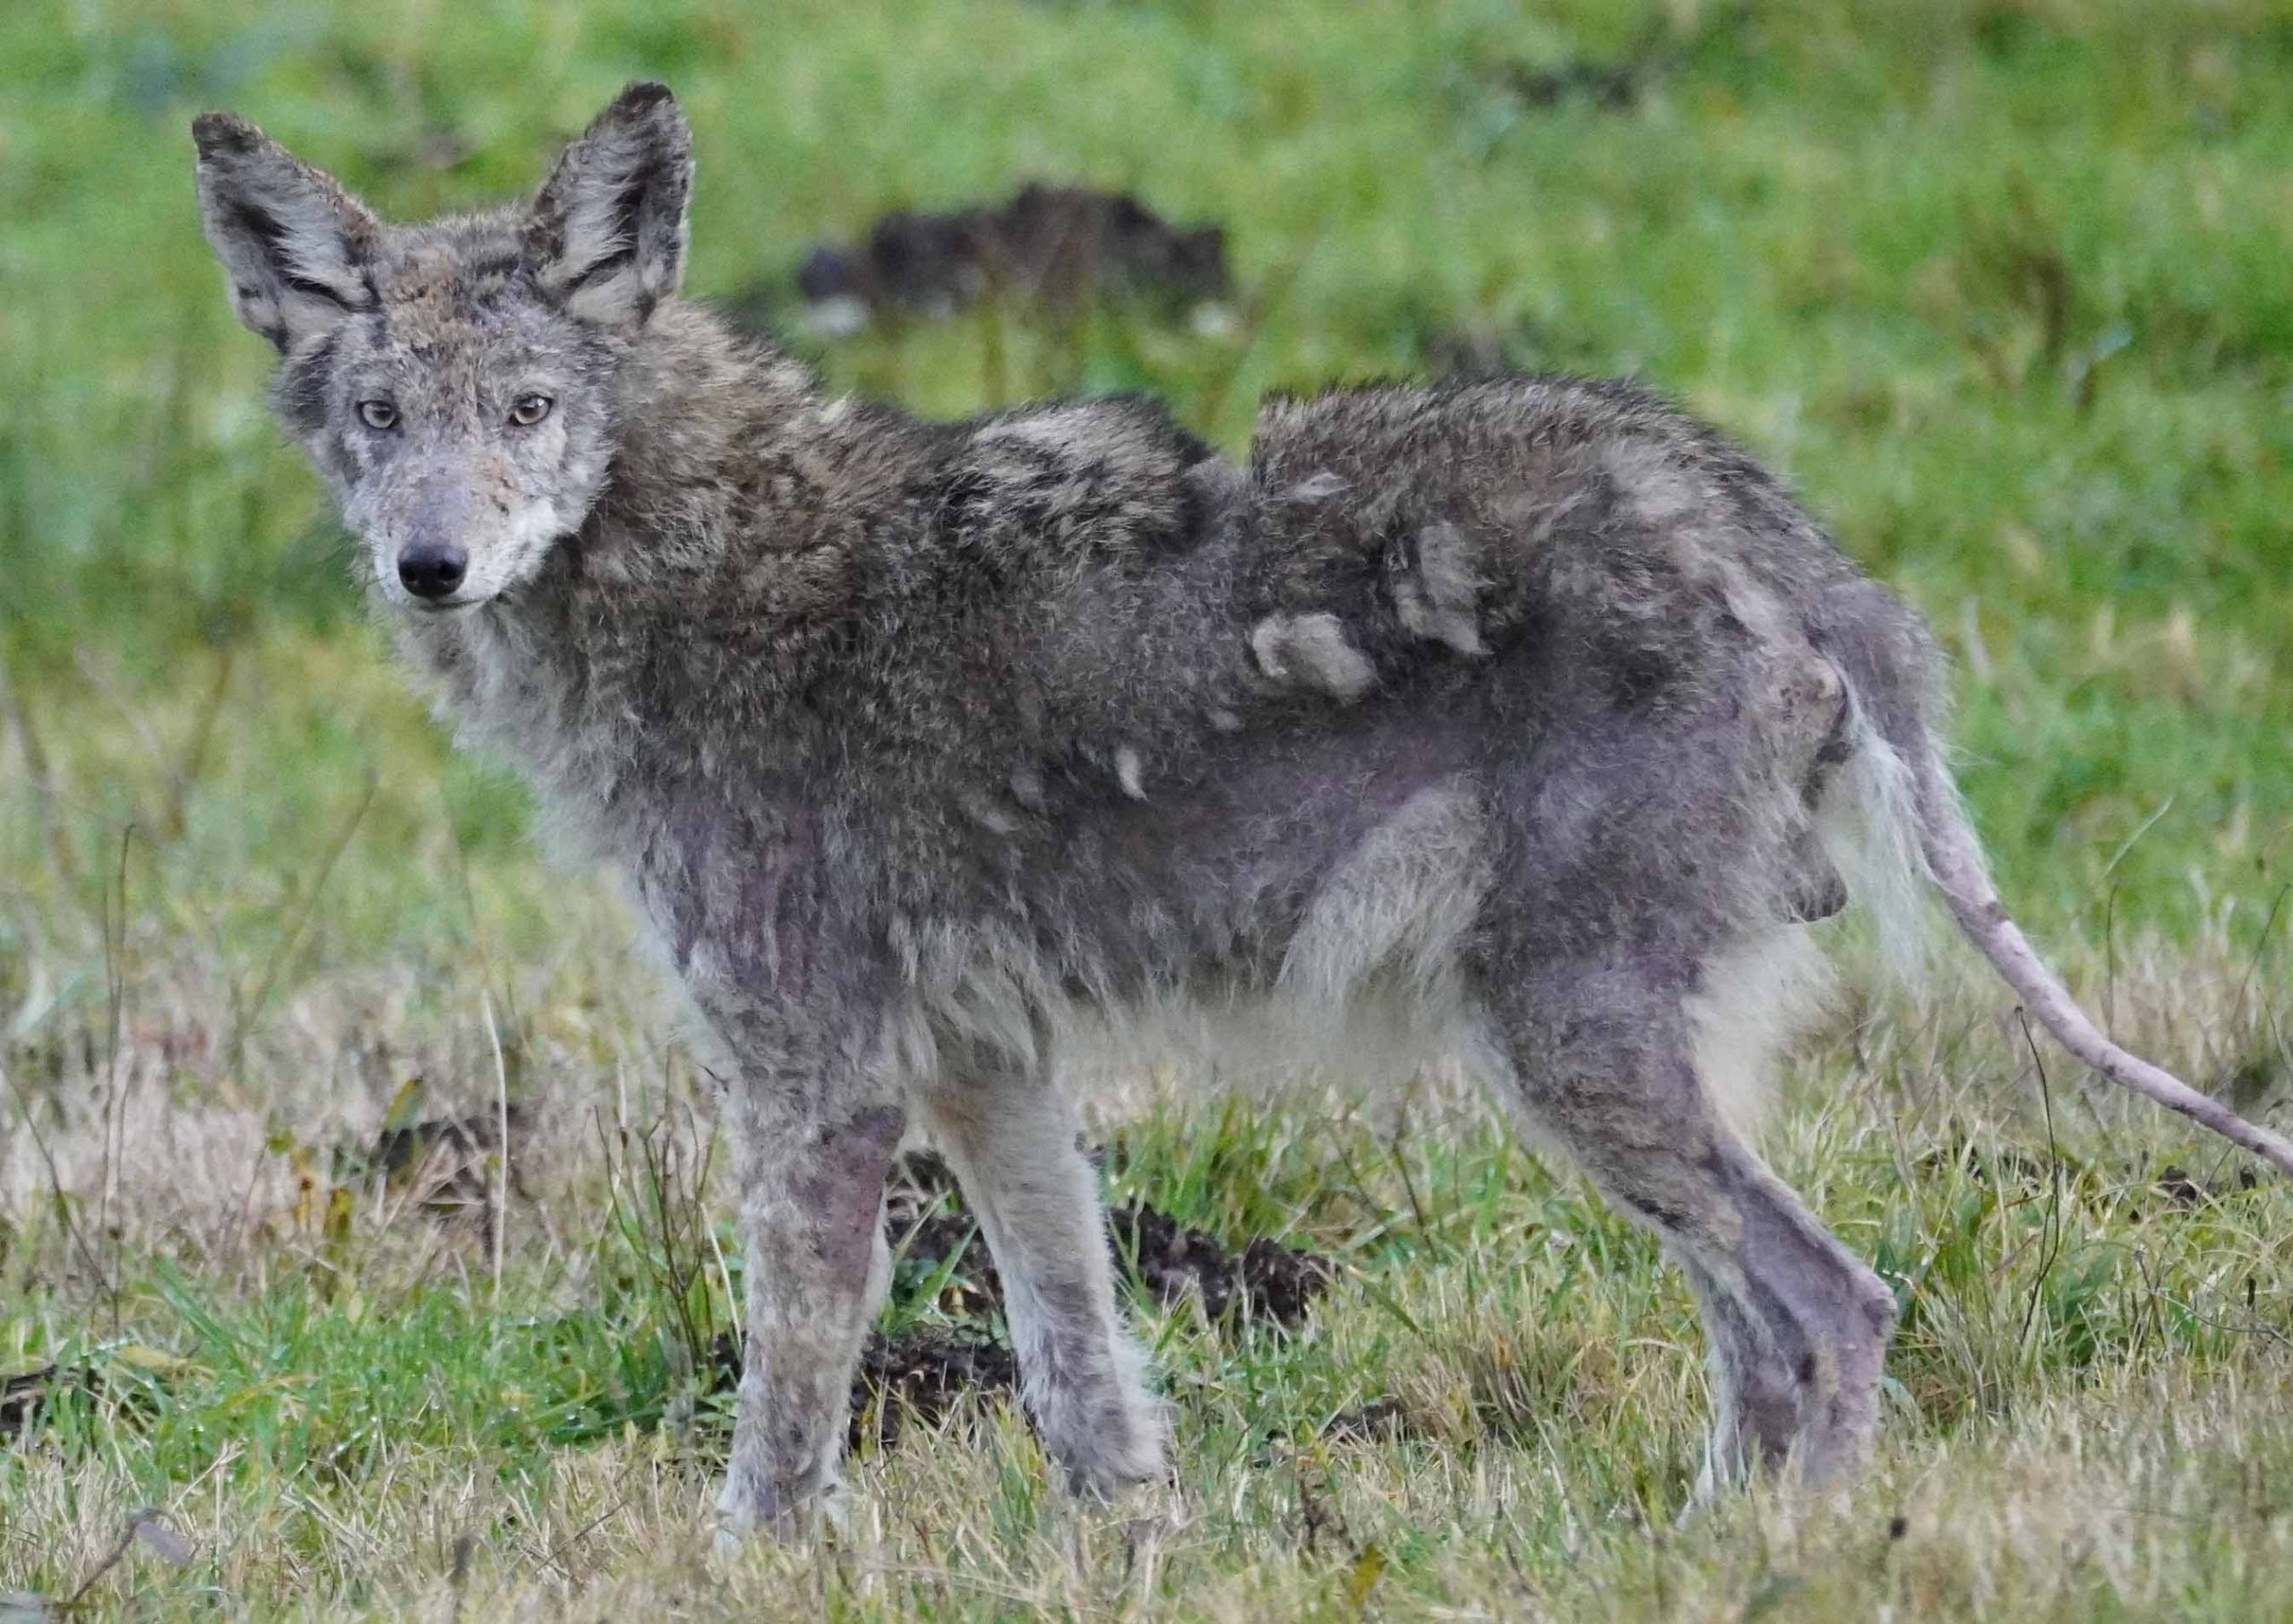 Coyote side view